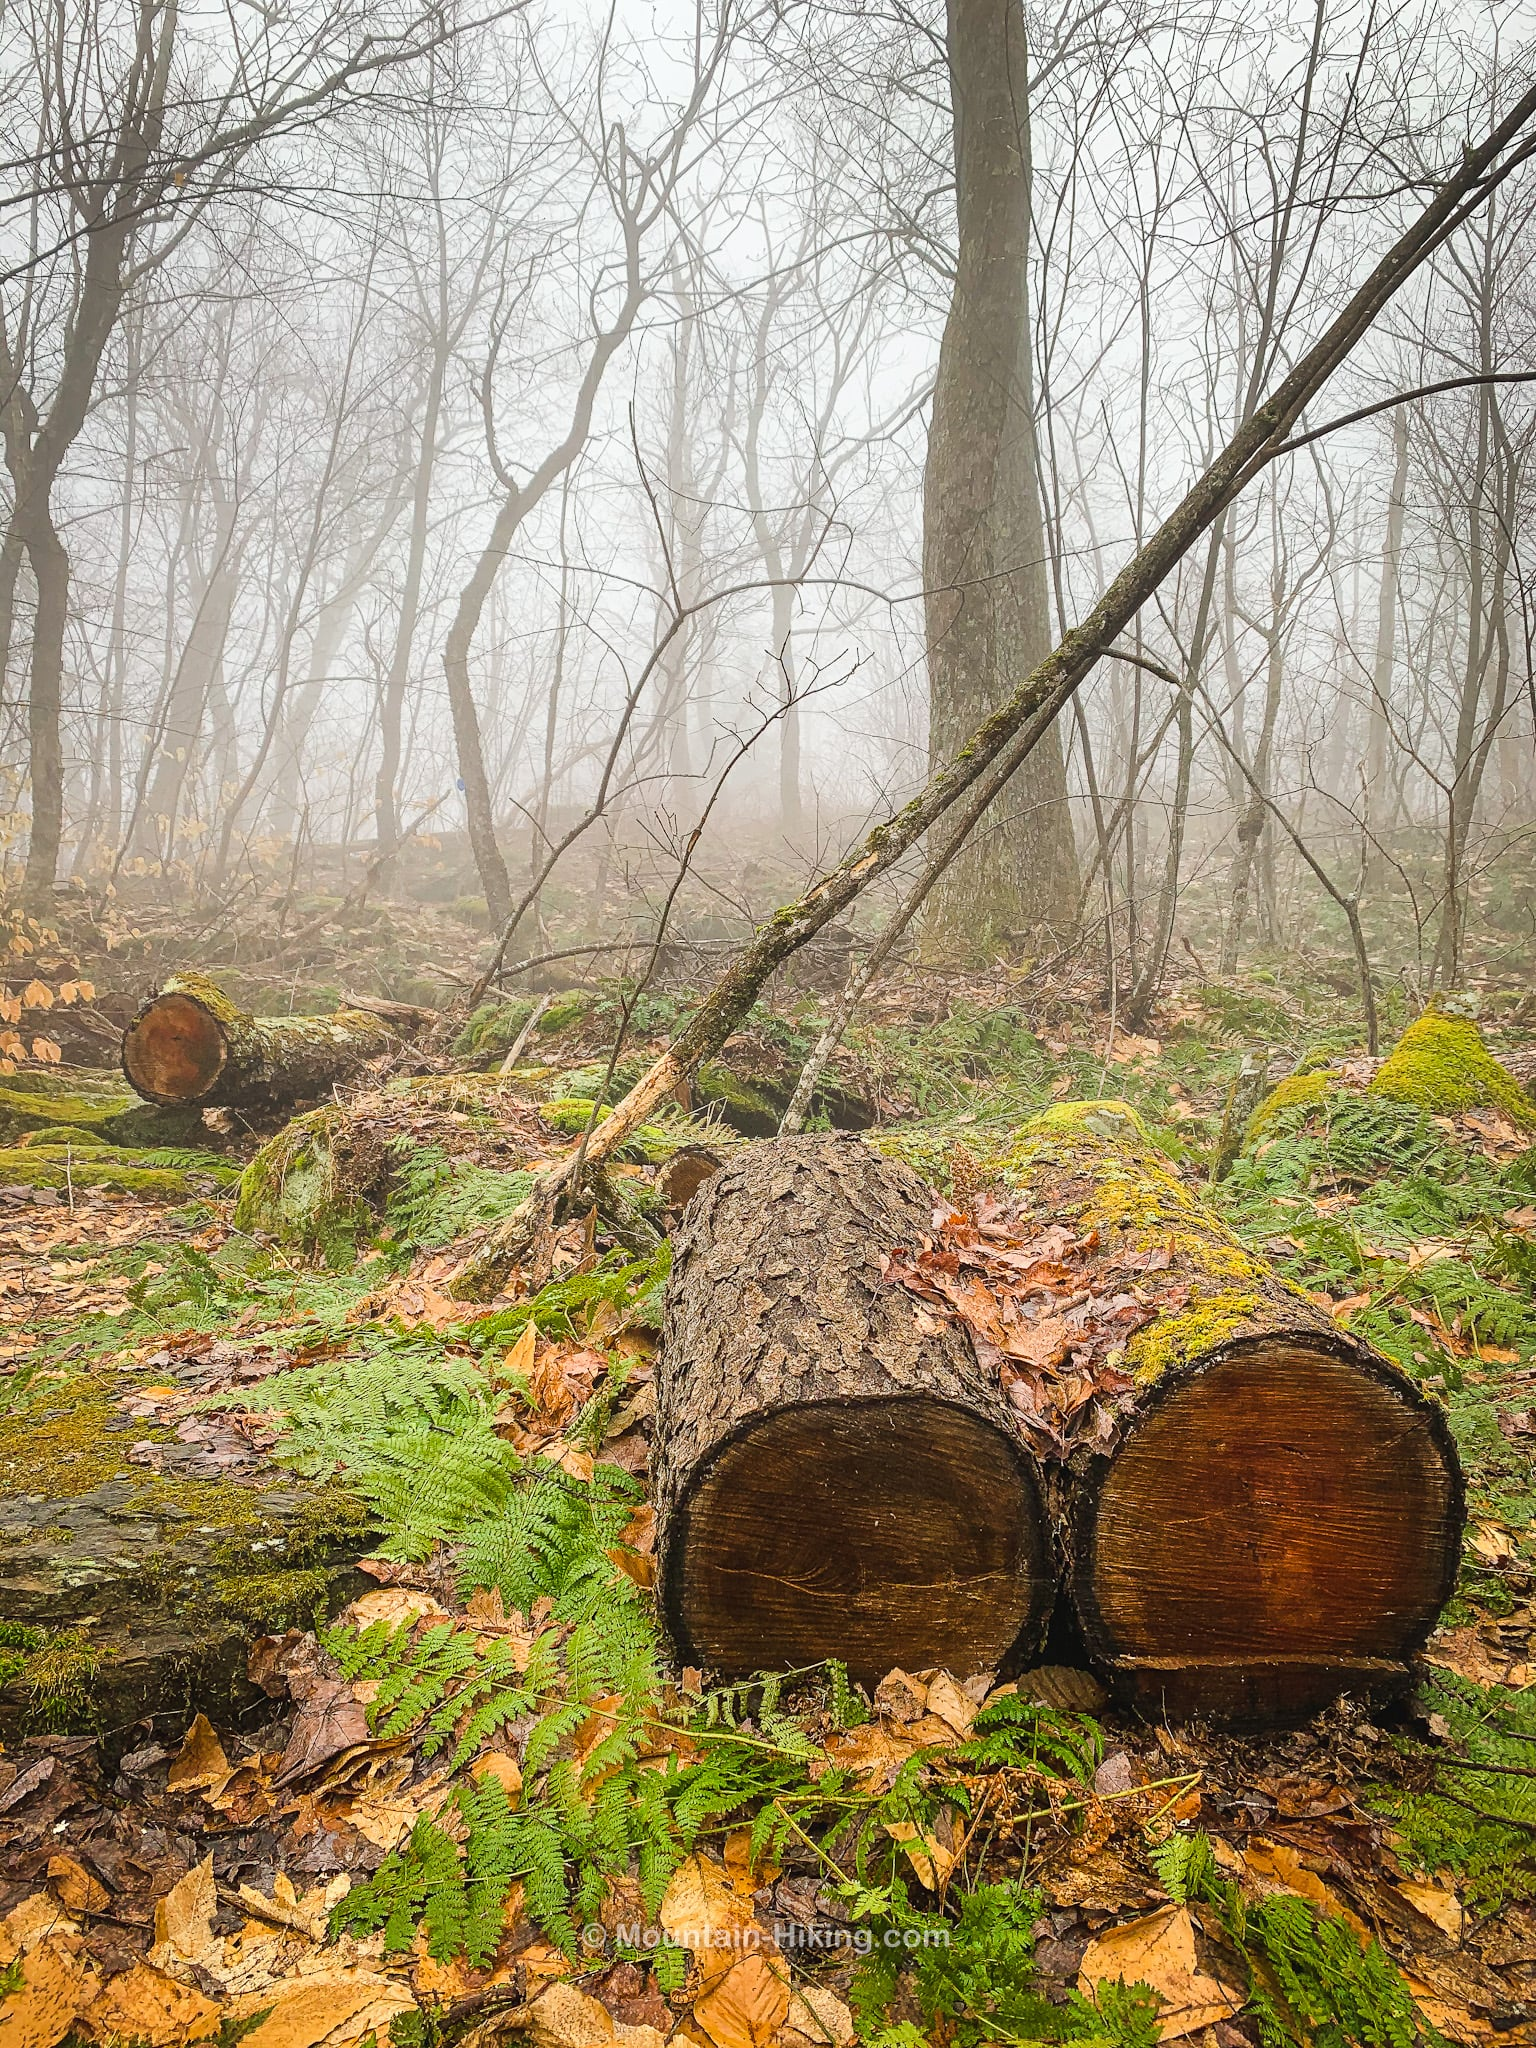 sawn trunk sections in woods